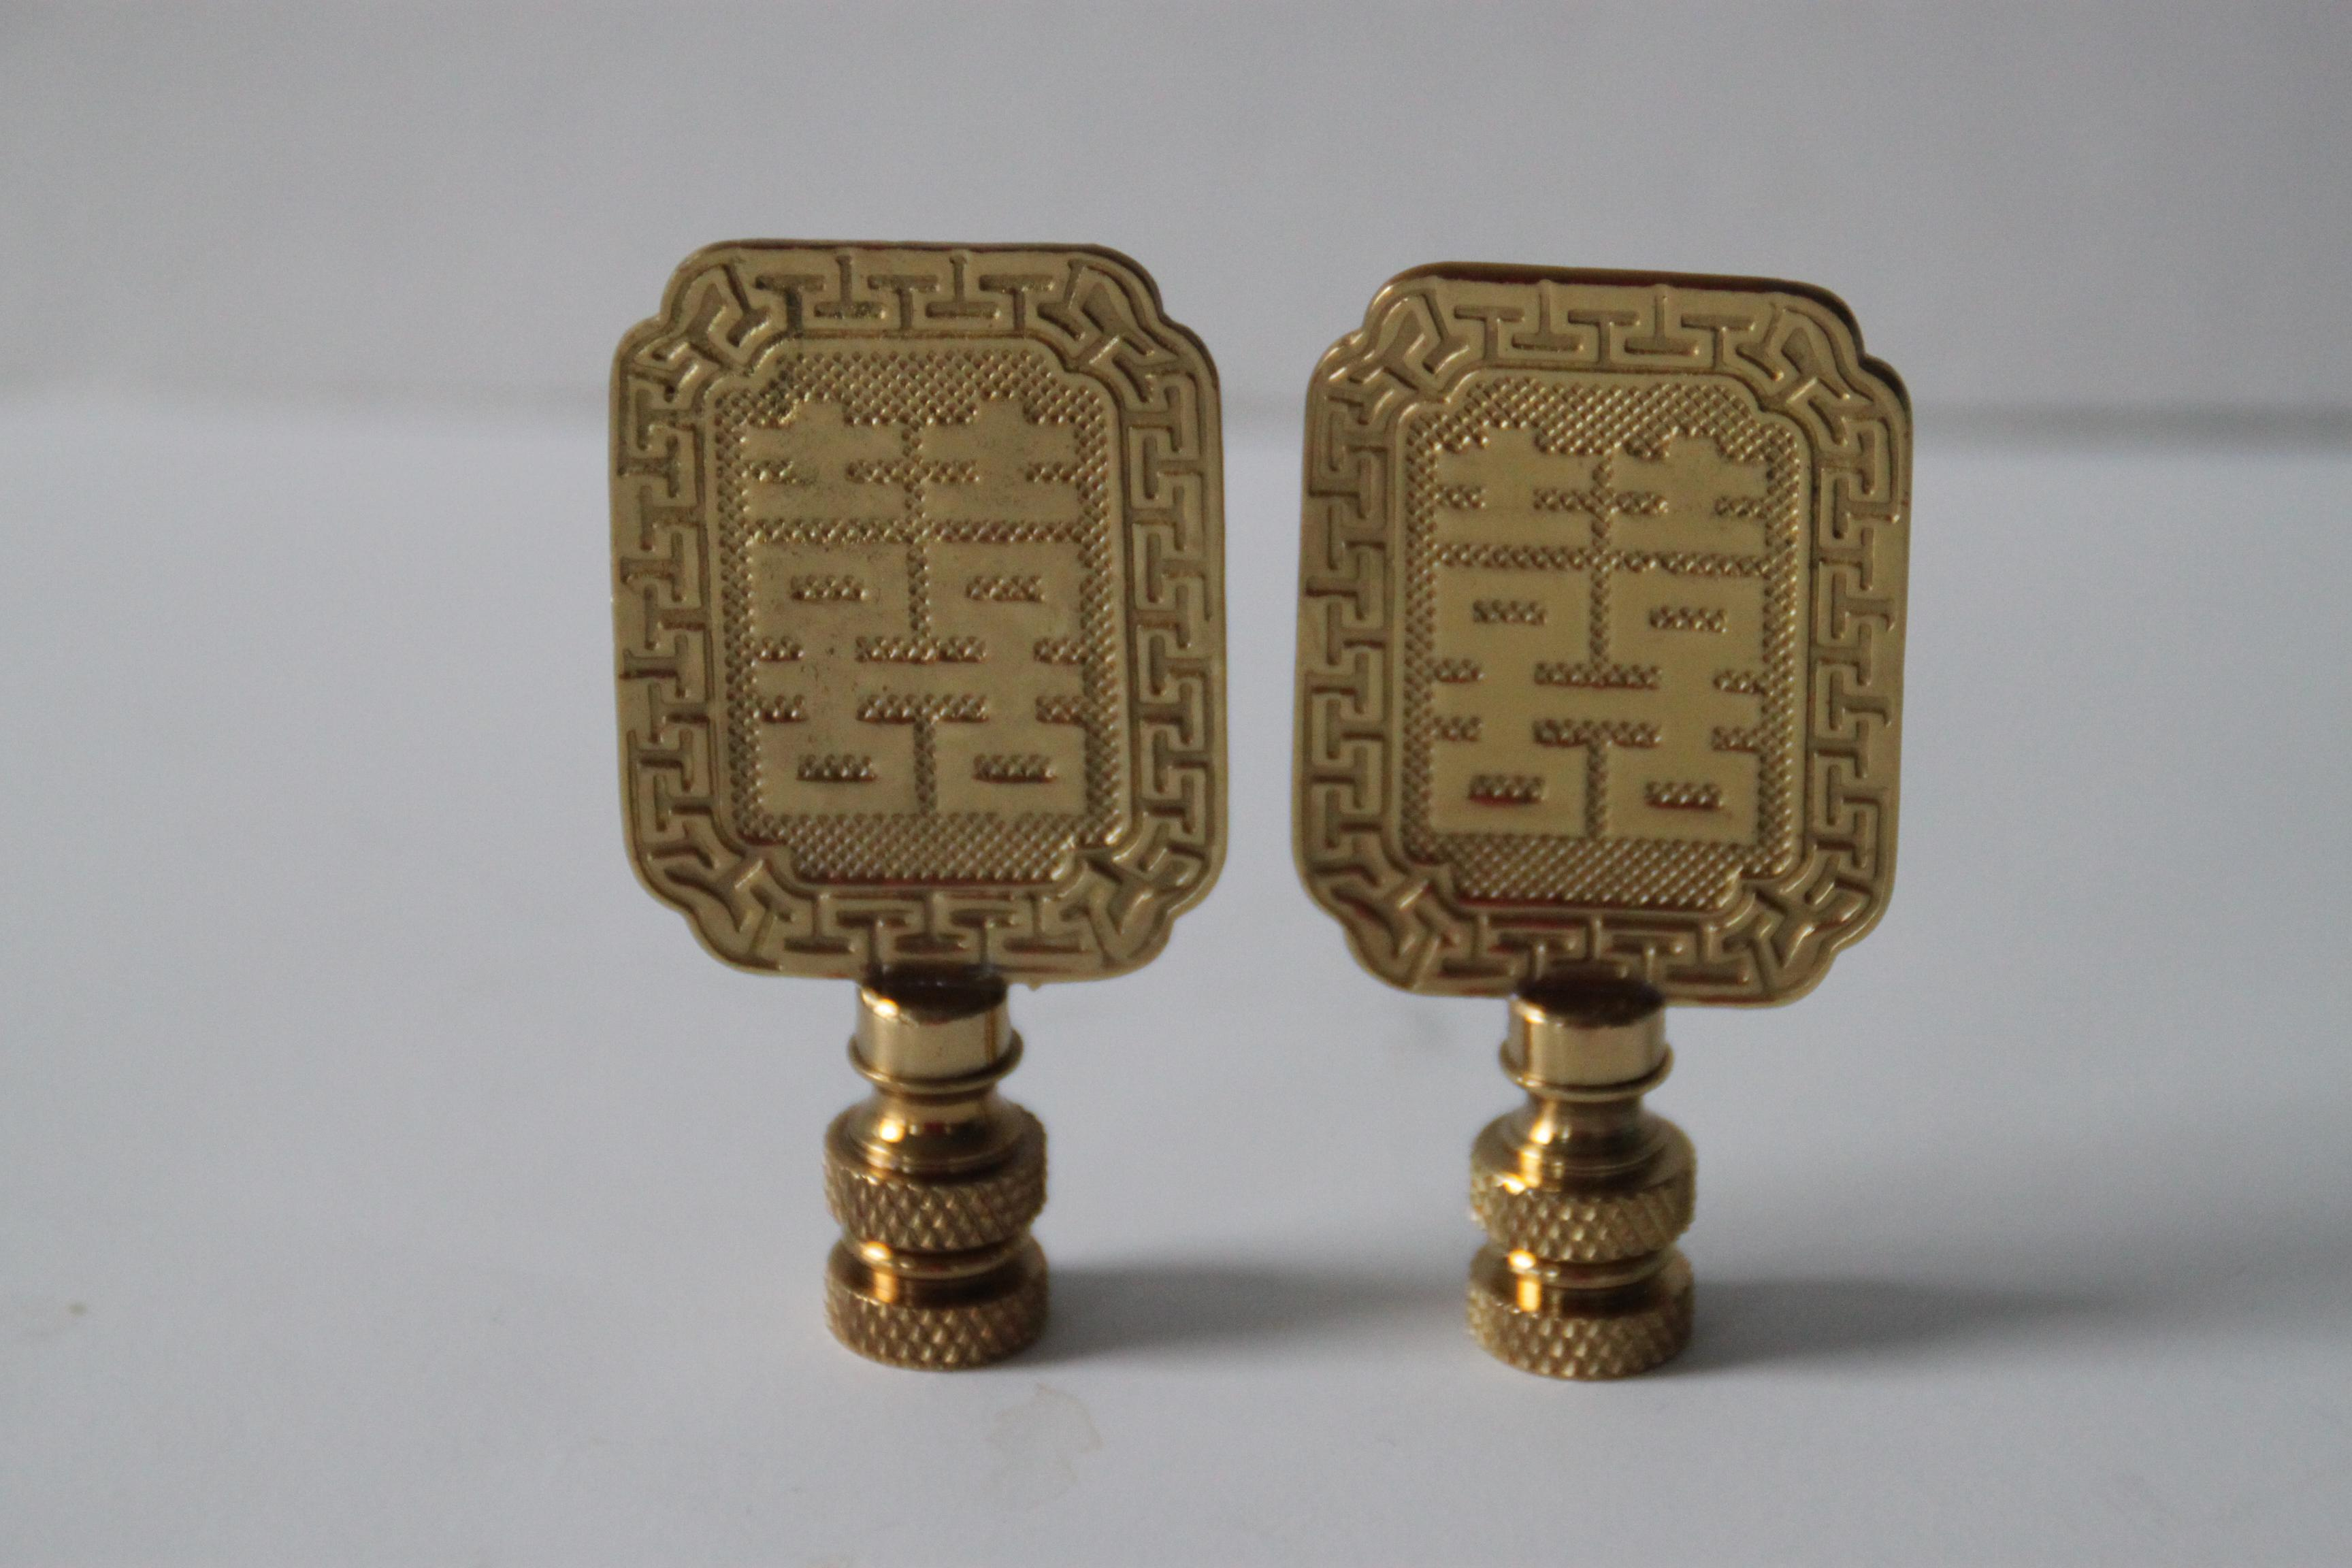 Asian Style Brass Lamp Finials   A Pair   Image 2 Of 4